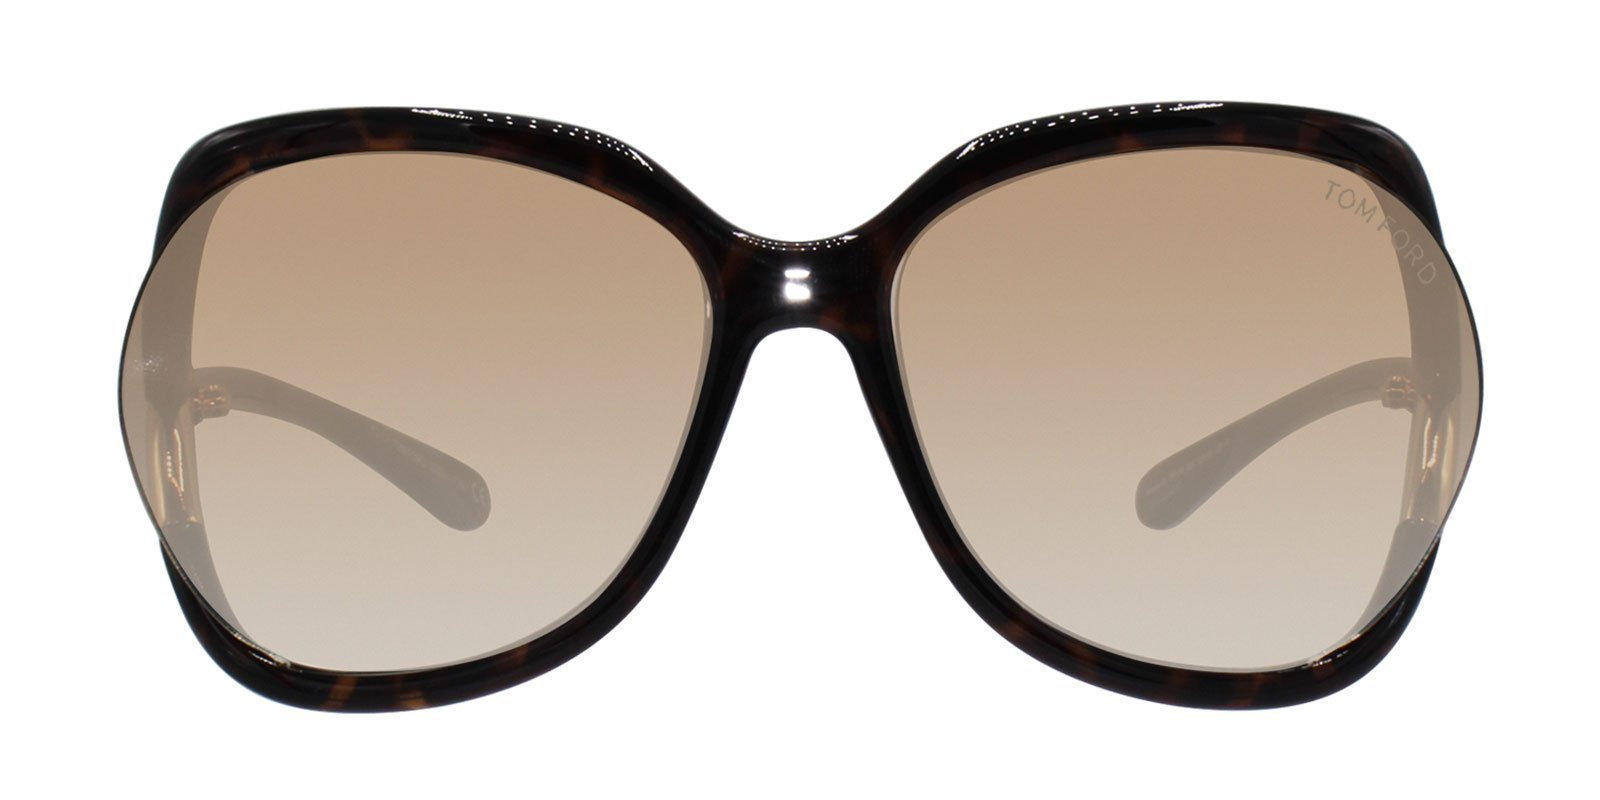 Tom Ford - Anouk-02 Tortoise - Brown-sunglasses-Designer Eyes